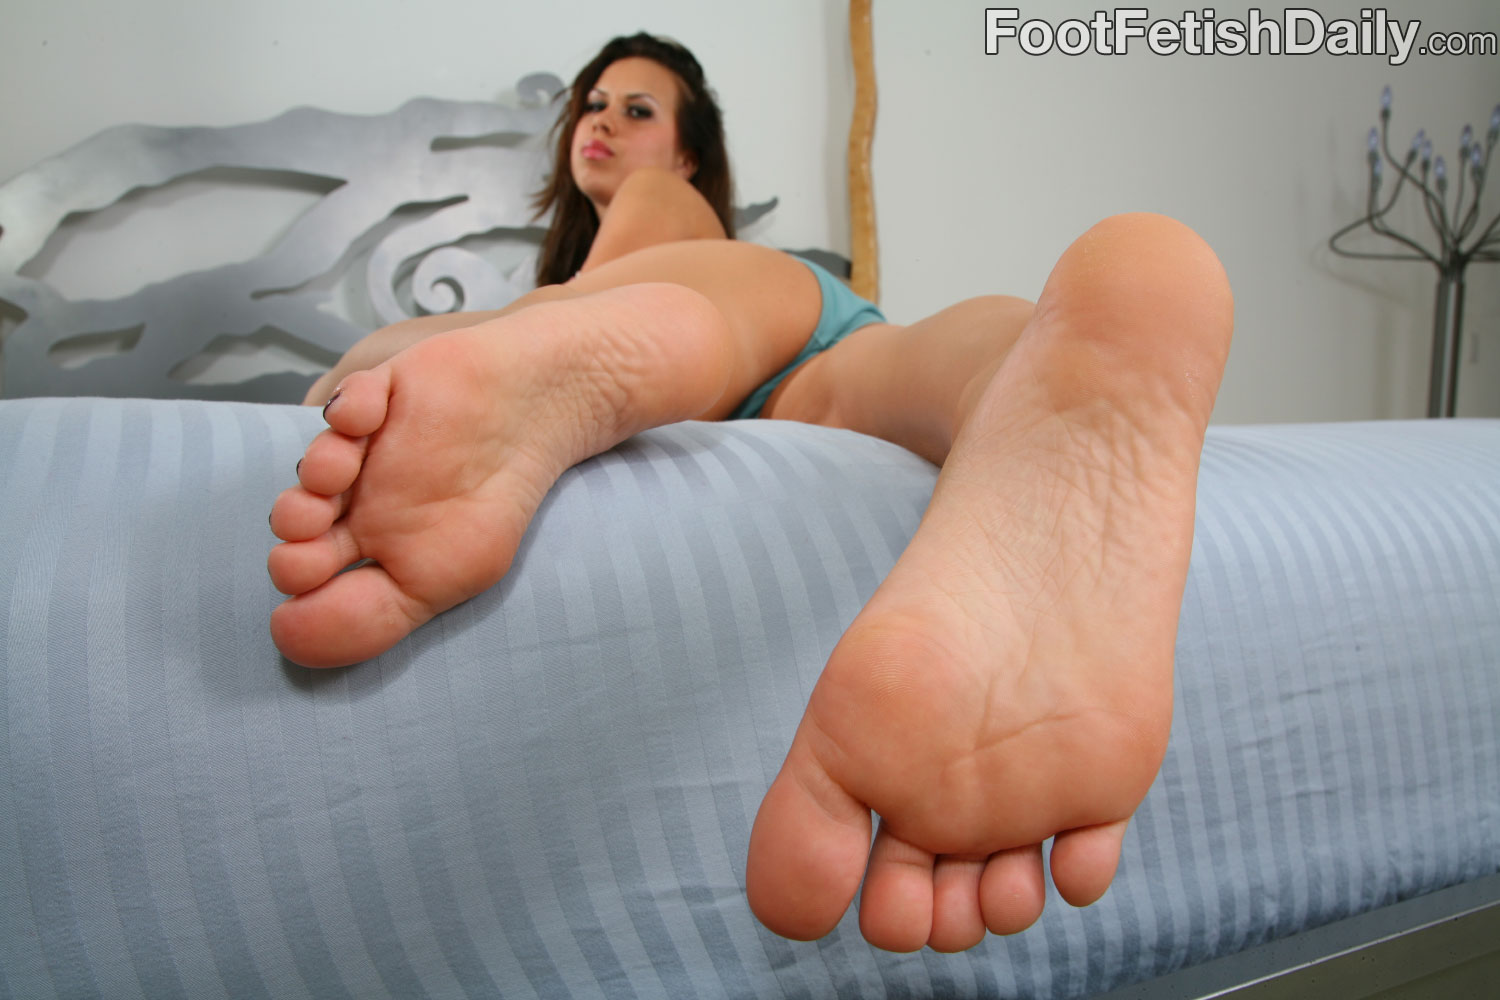 Kickass And See More Great S Of Katya At Foot Fetish Daily